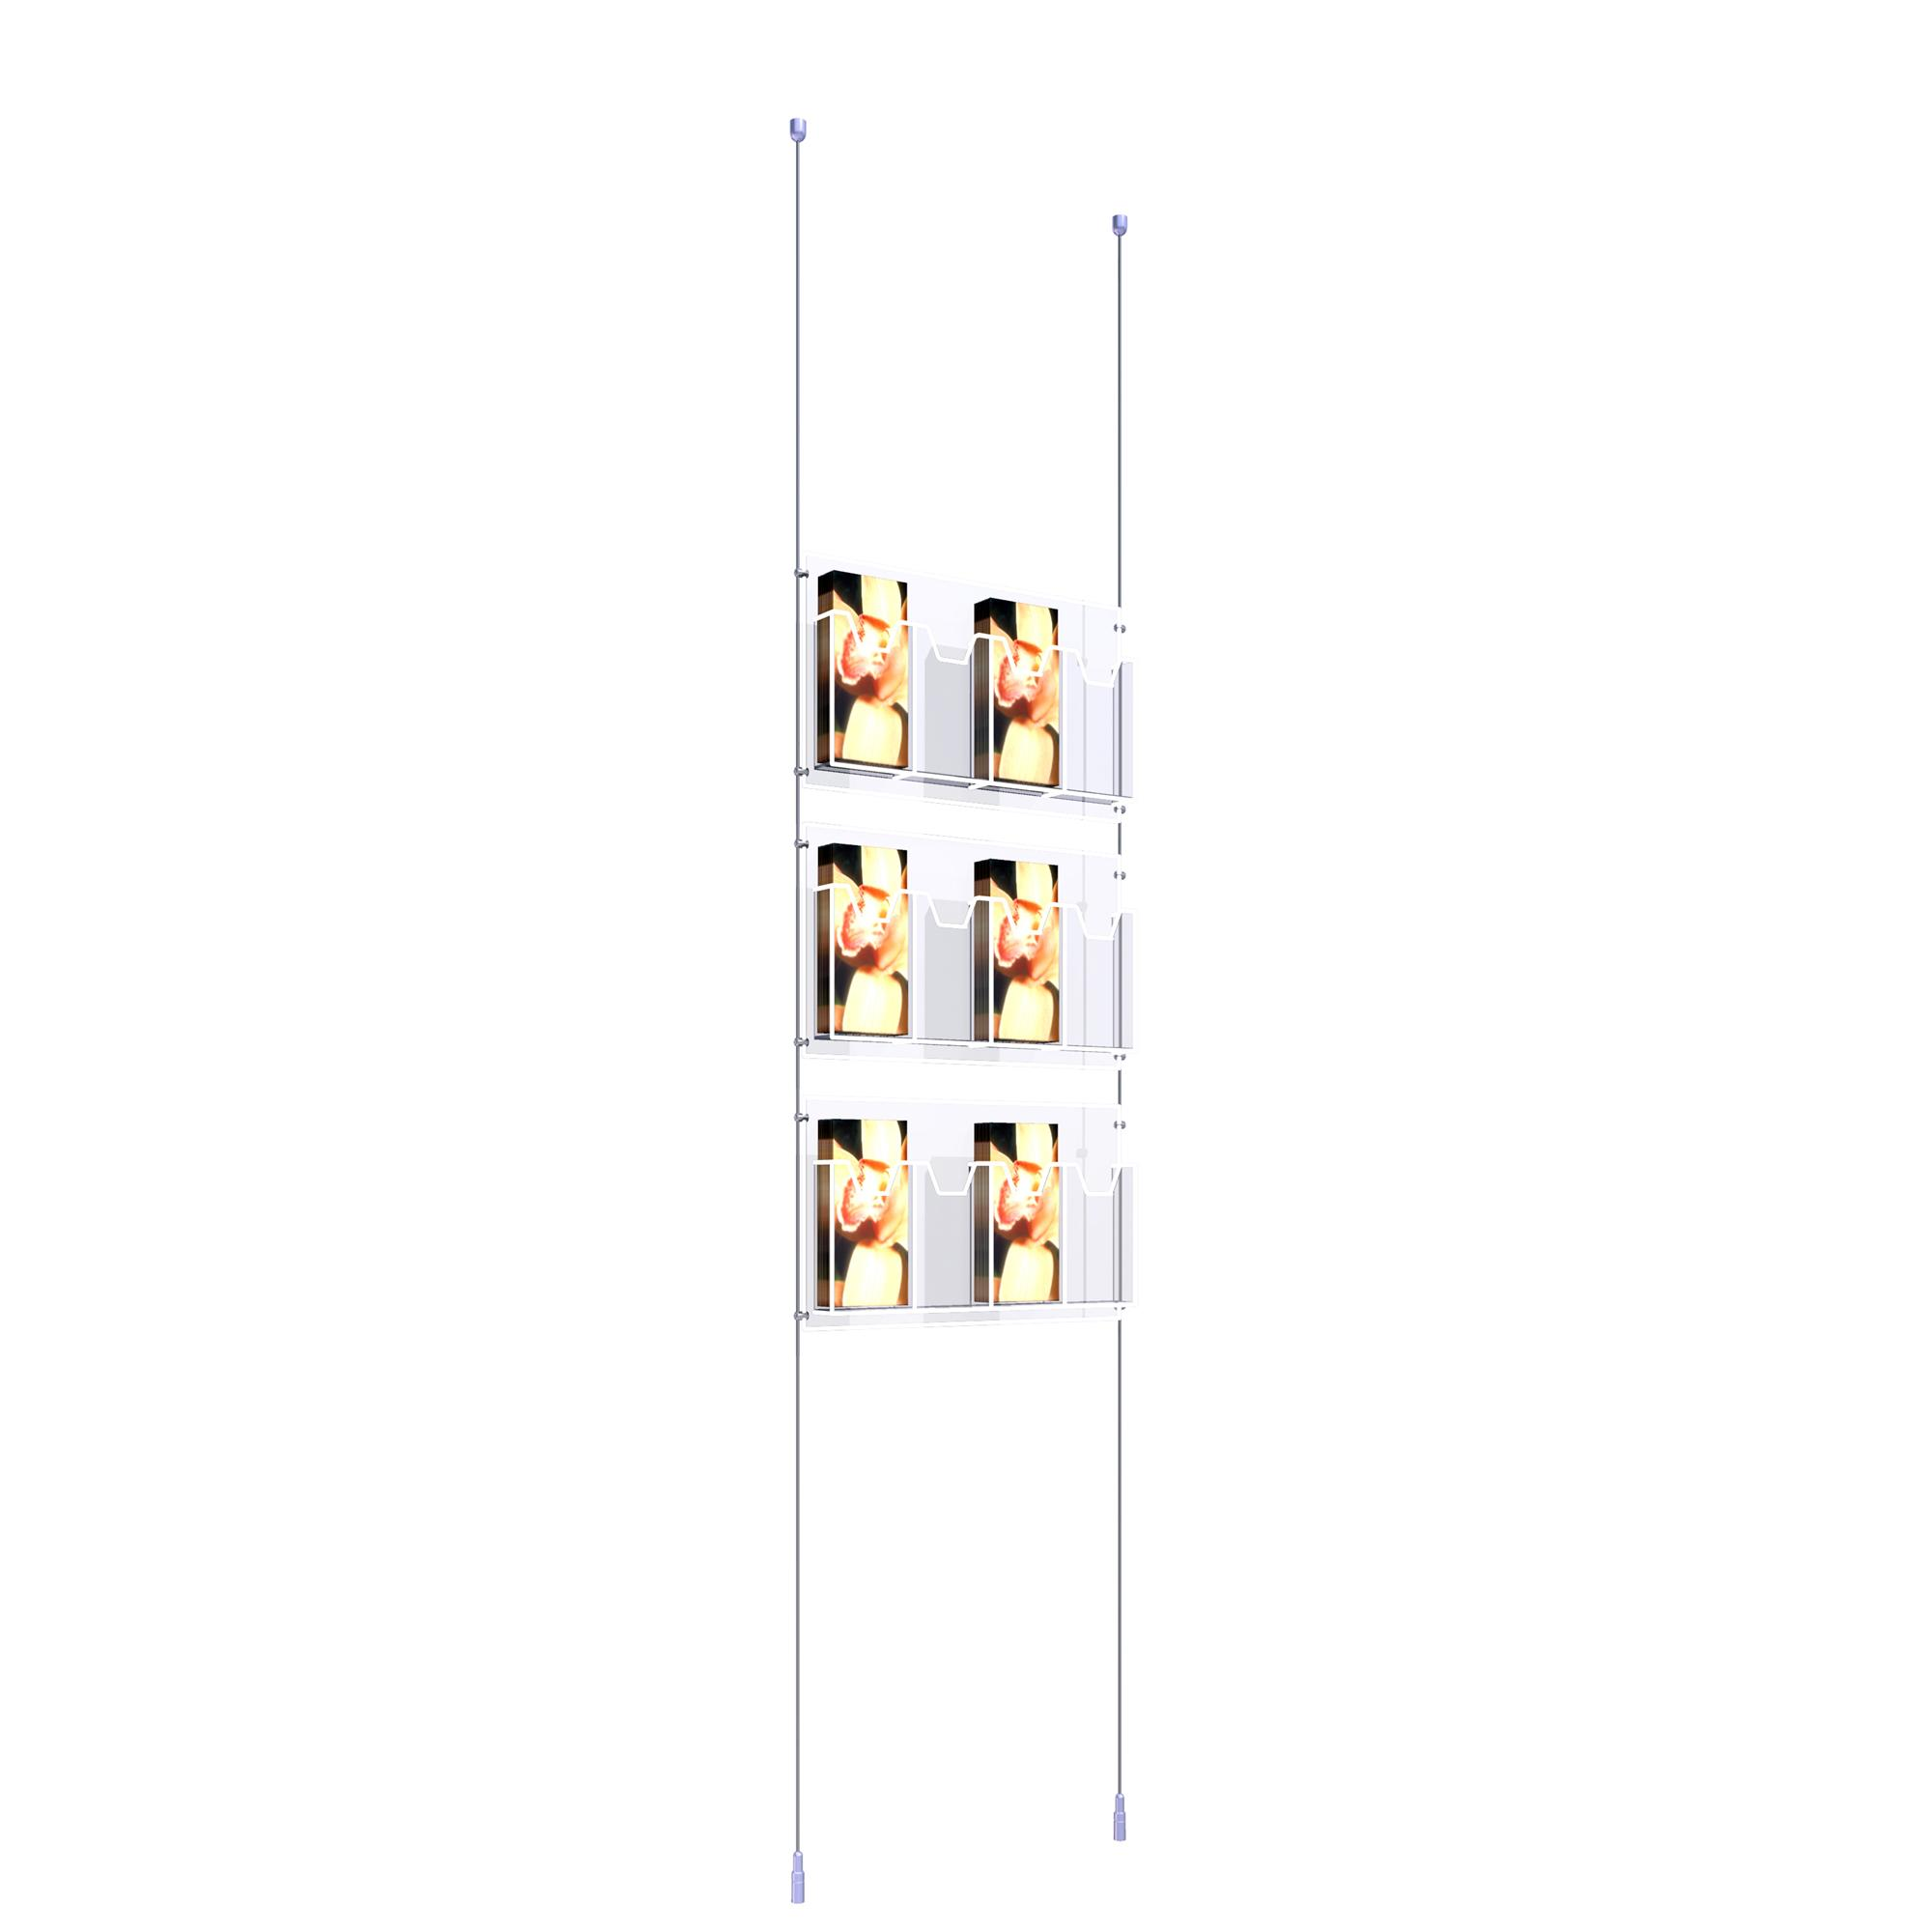 Ceiling to Floor Kit with 3 x Quadruple 1/3  A4 Dispensers